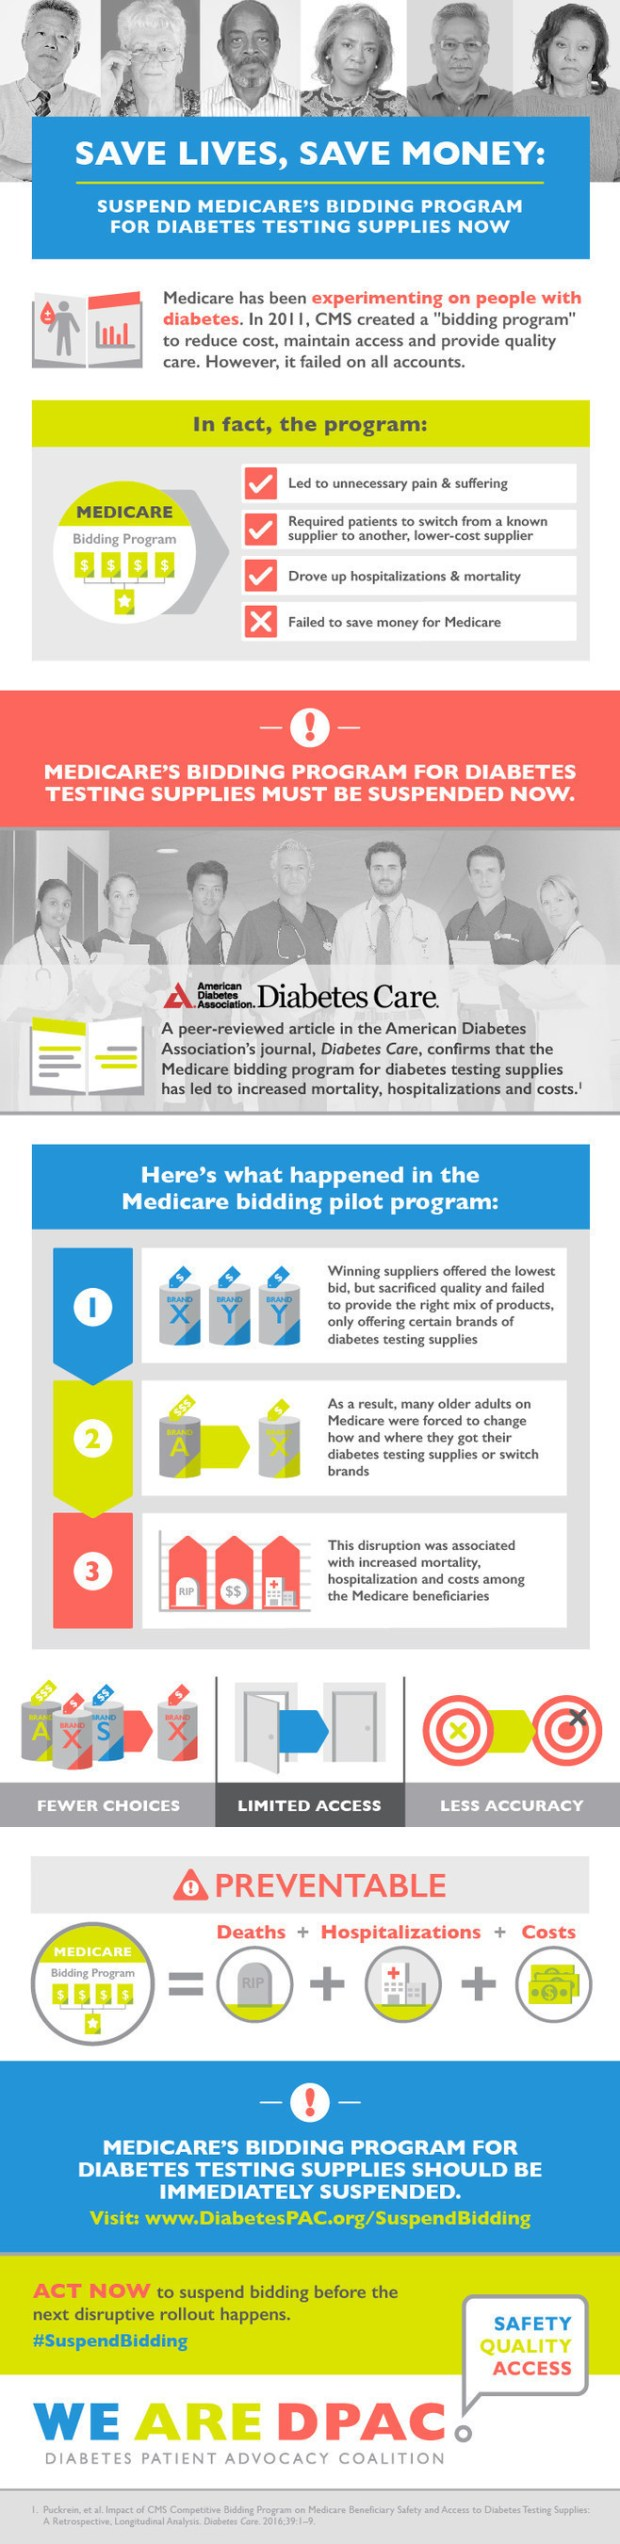 DPAC Infographic (PRNewsFoto/Diabetes Patient Advocacy Coal..)